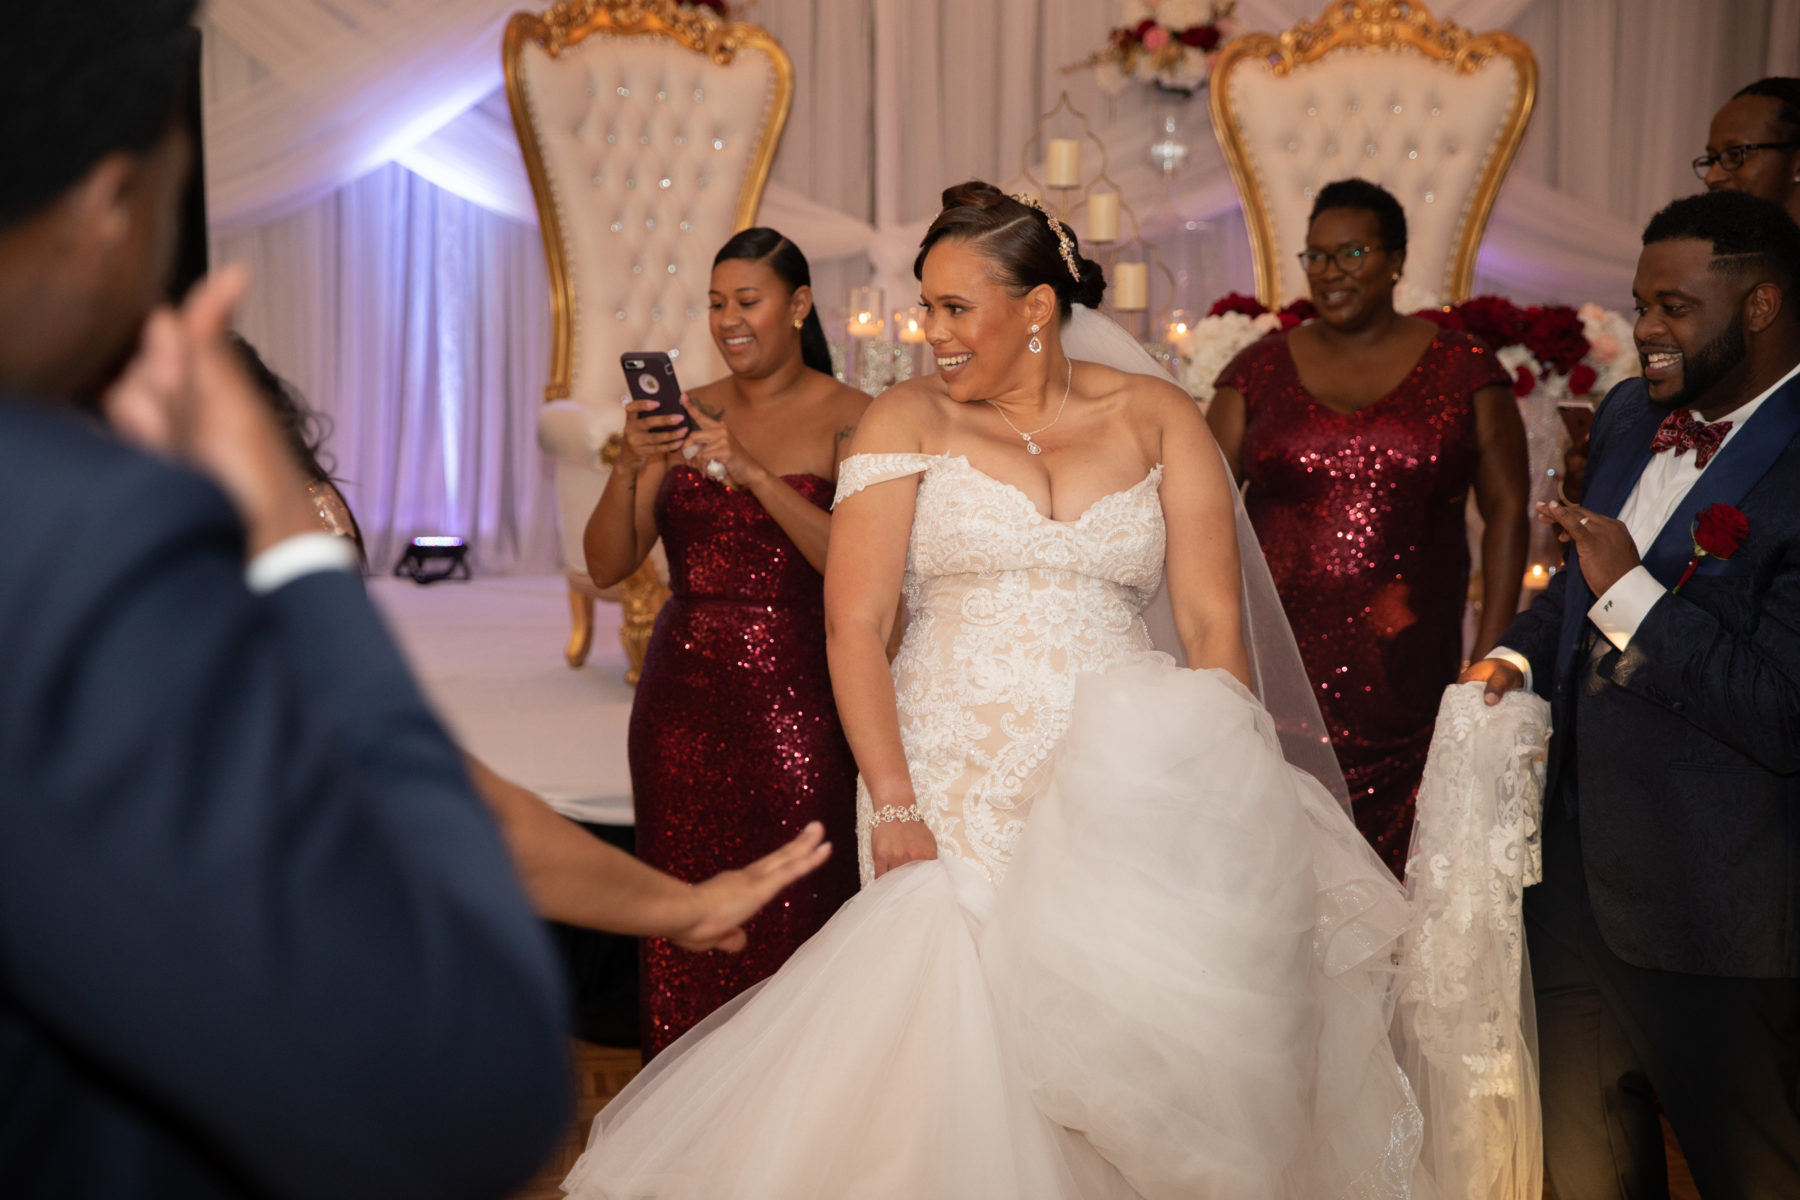 Bride Dancing: Luxurious Stone Rivers Country Club Wedding featured on Nashville Bride Guide